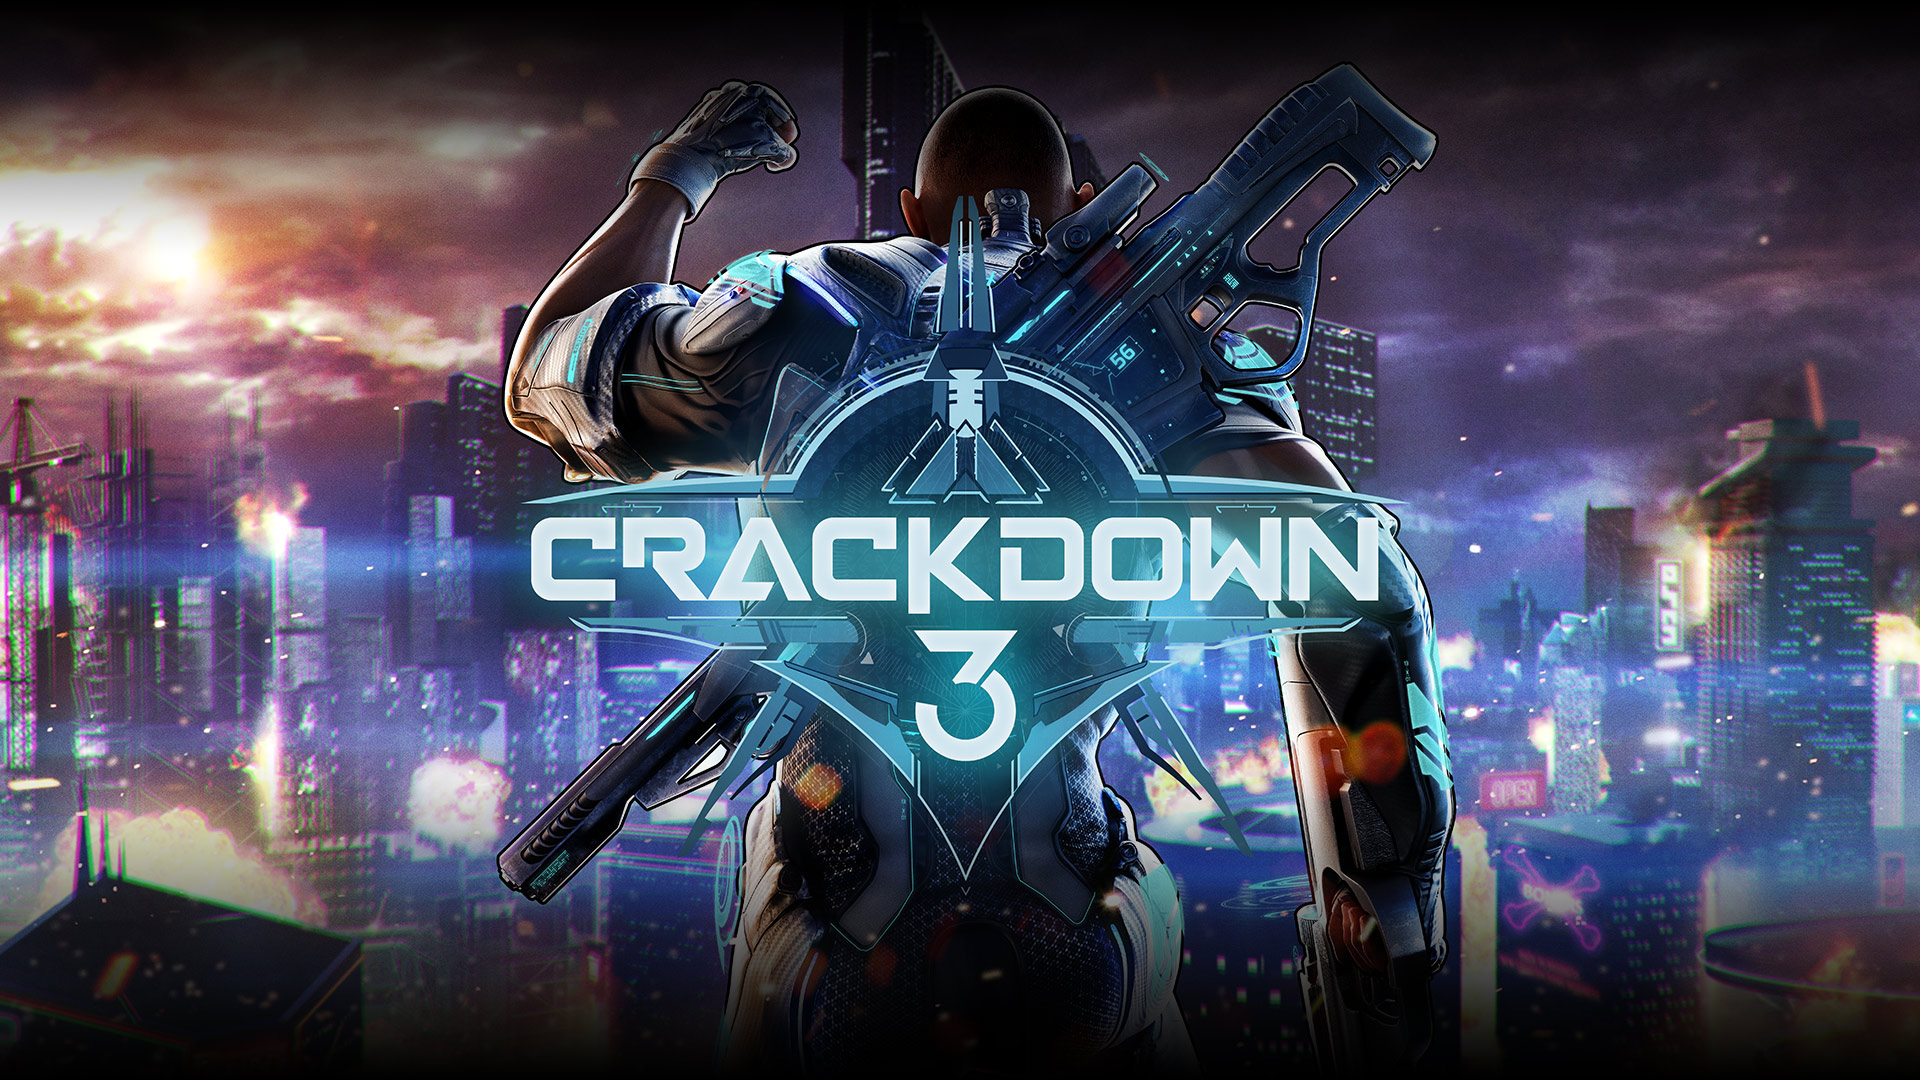 crackdown 3, voice actor, voice cast